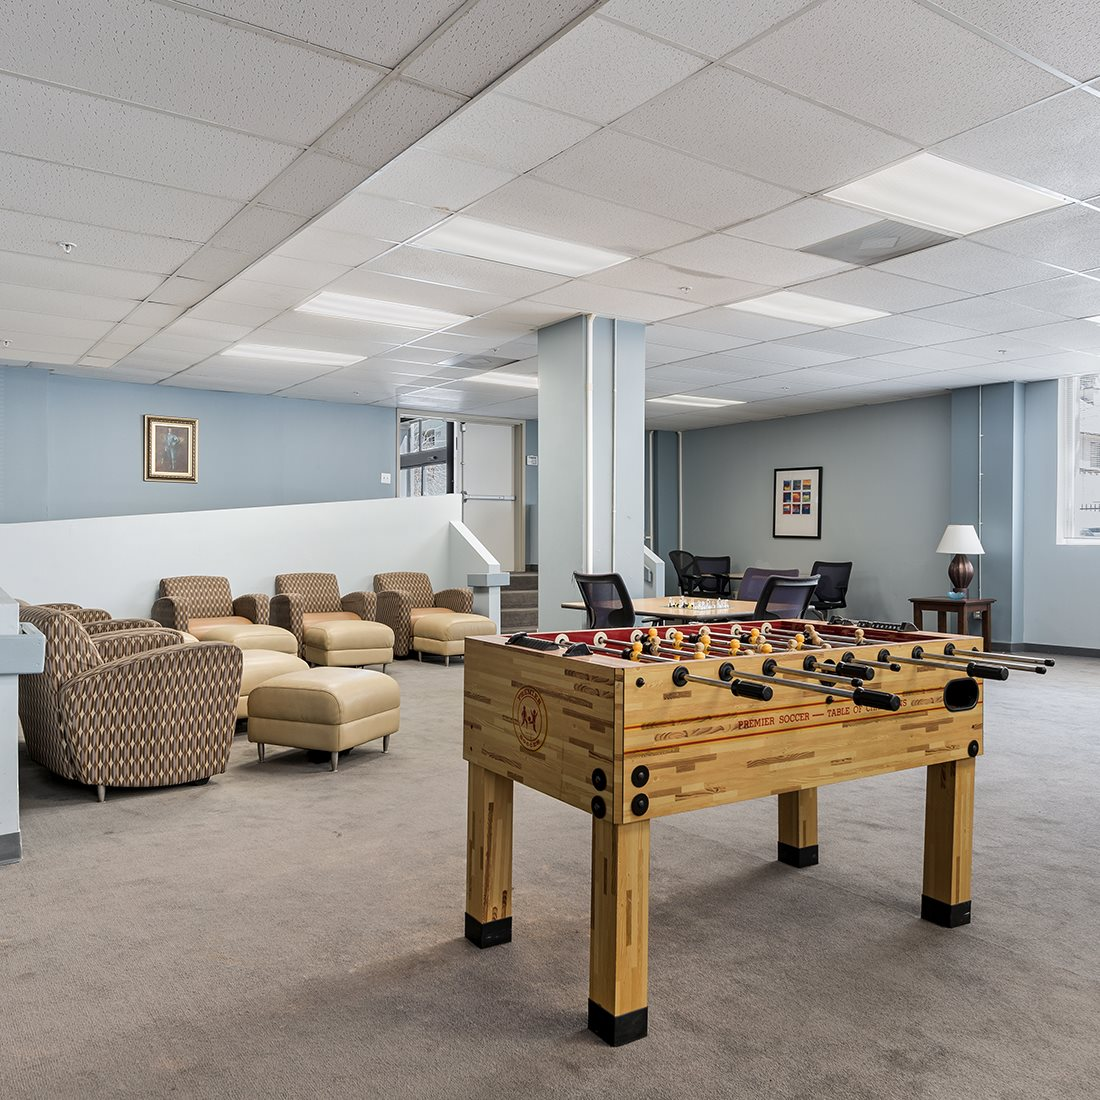 Community room with a foosball table, two round tables with chairs, and multiple sofa chairs. Room has stair and ramp access. Floor is carpeted.